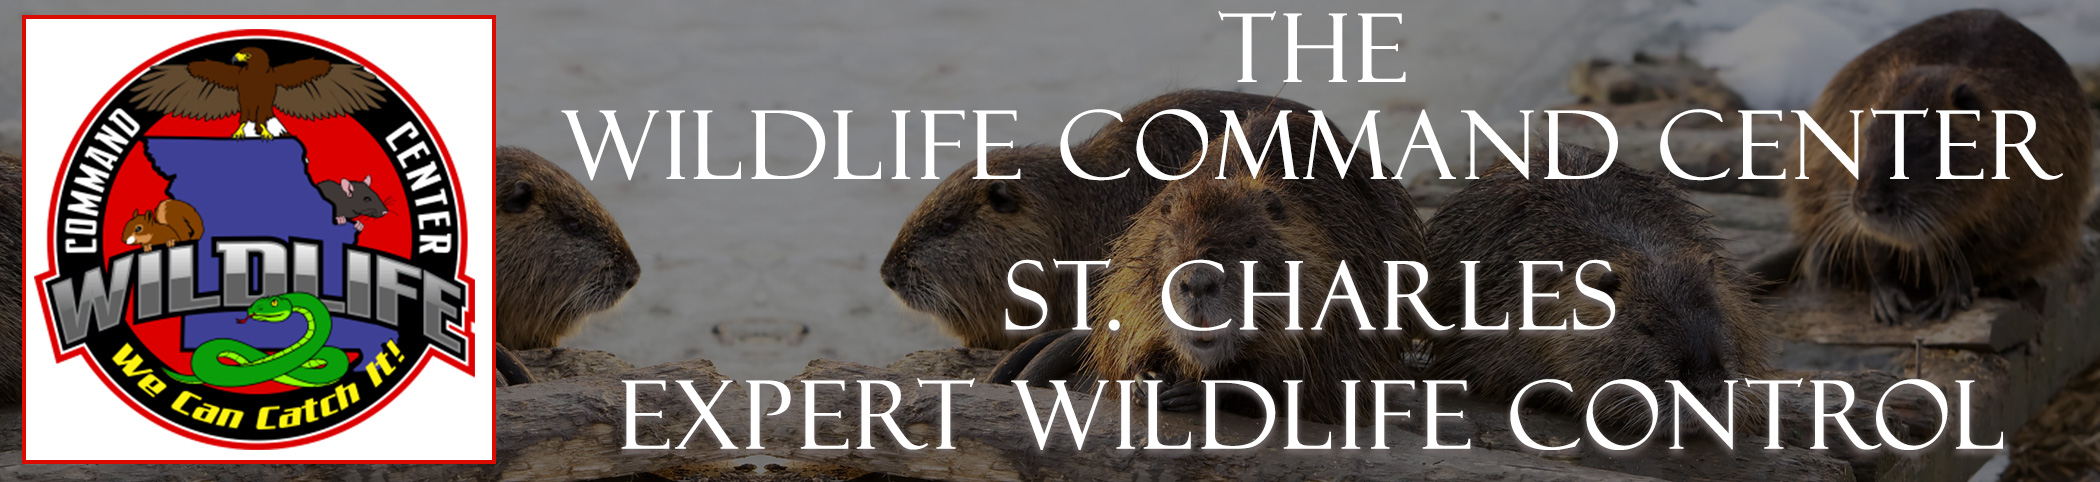 The Wildlife Command Center St. Charles Missouri Image